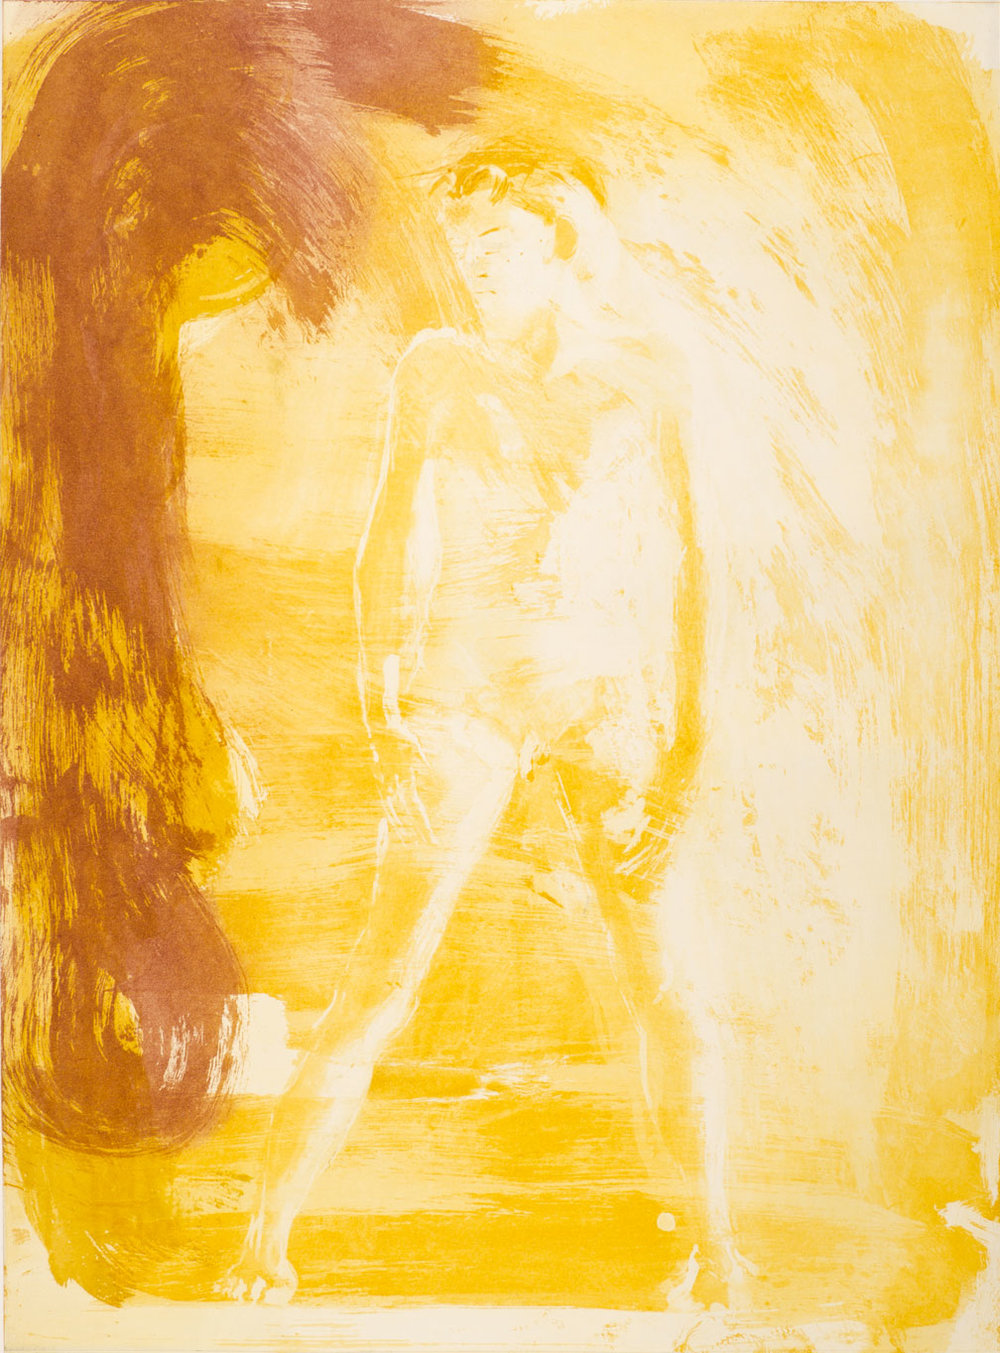 Floating Islands George Platt Lynes Figure, 1985. Etching on paper, study proof E, 30 x 21 inches